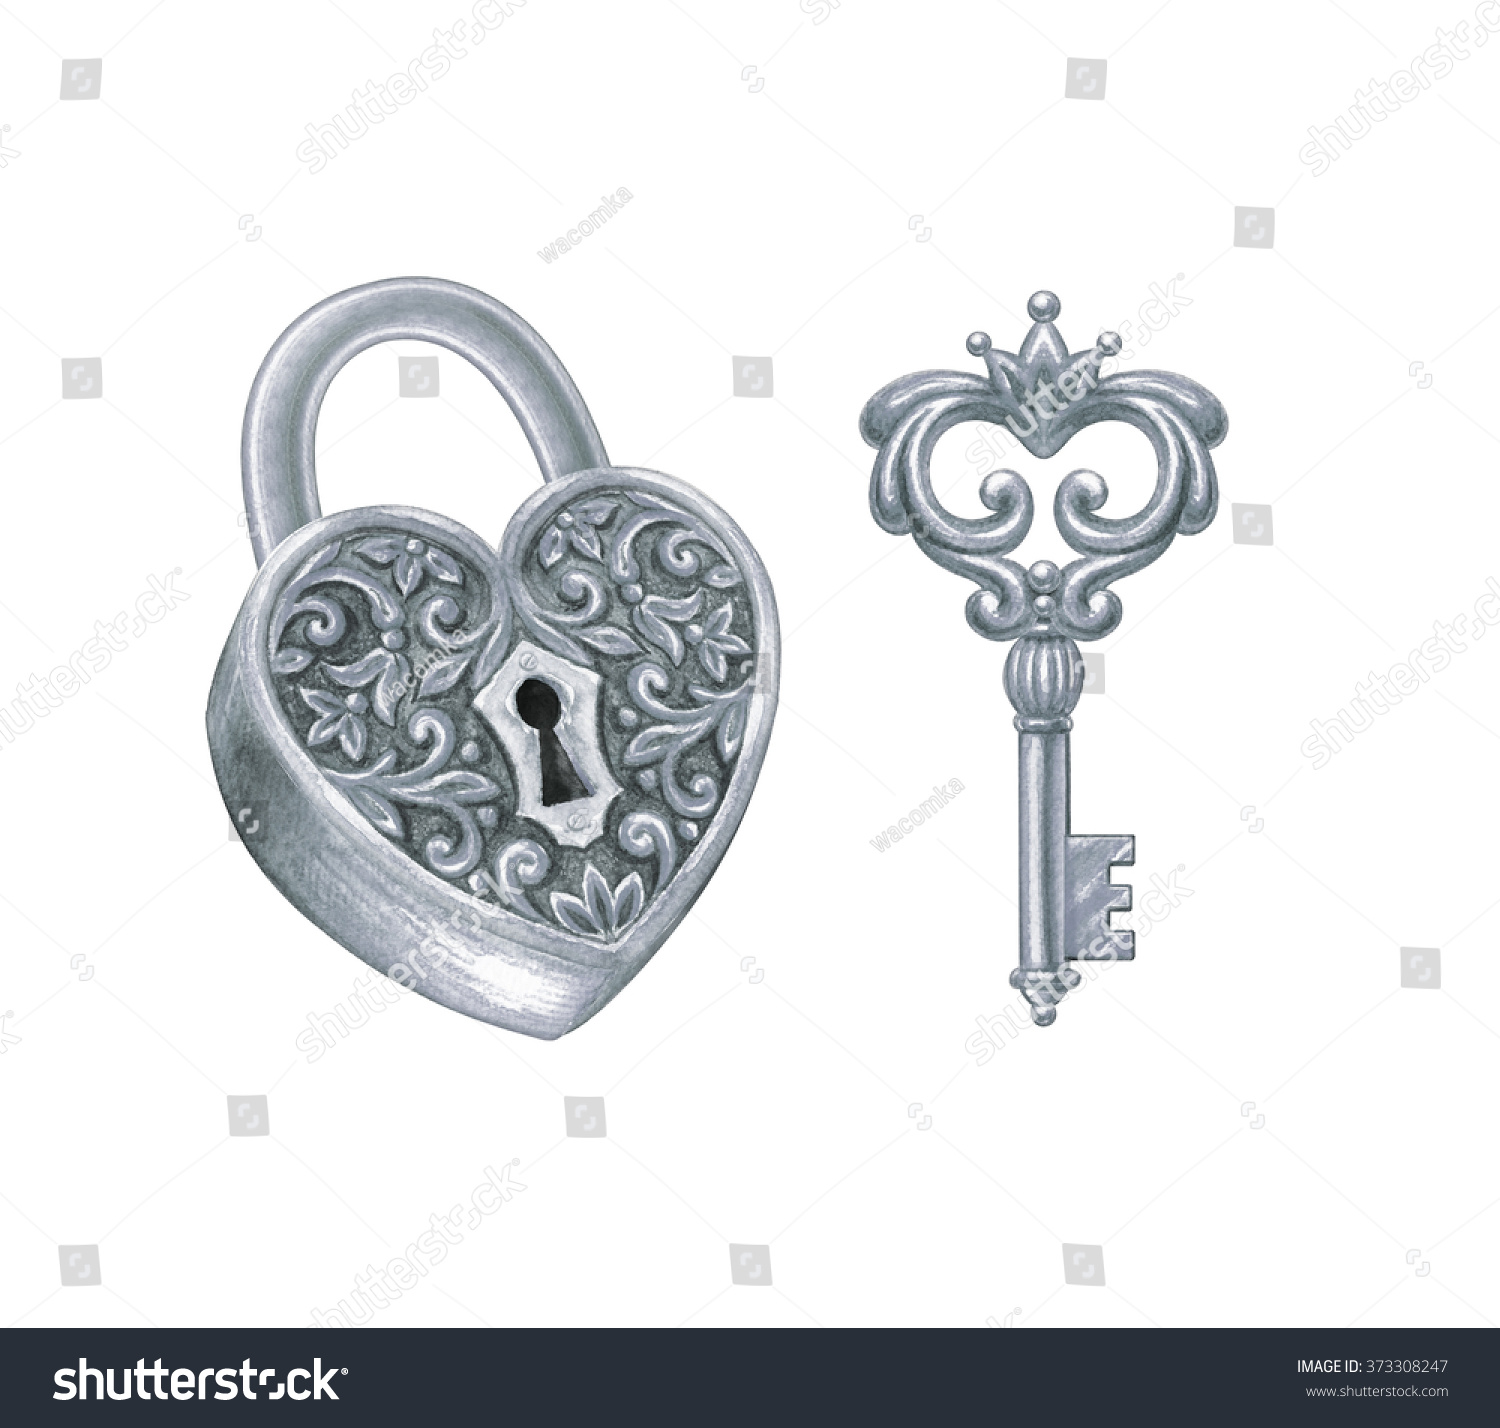 silver key and heart shaped lock design elements set